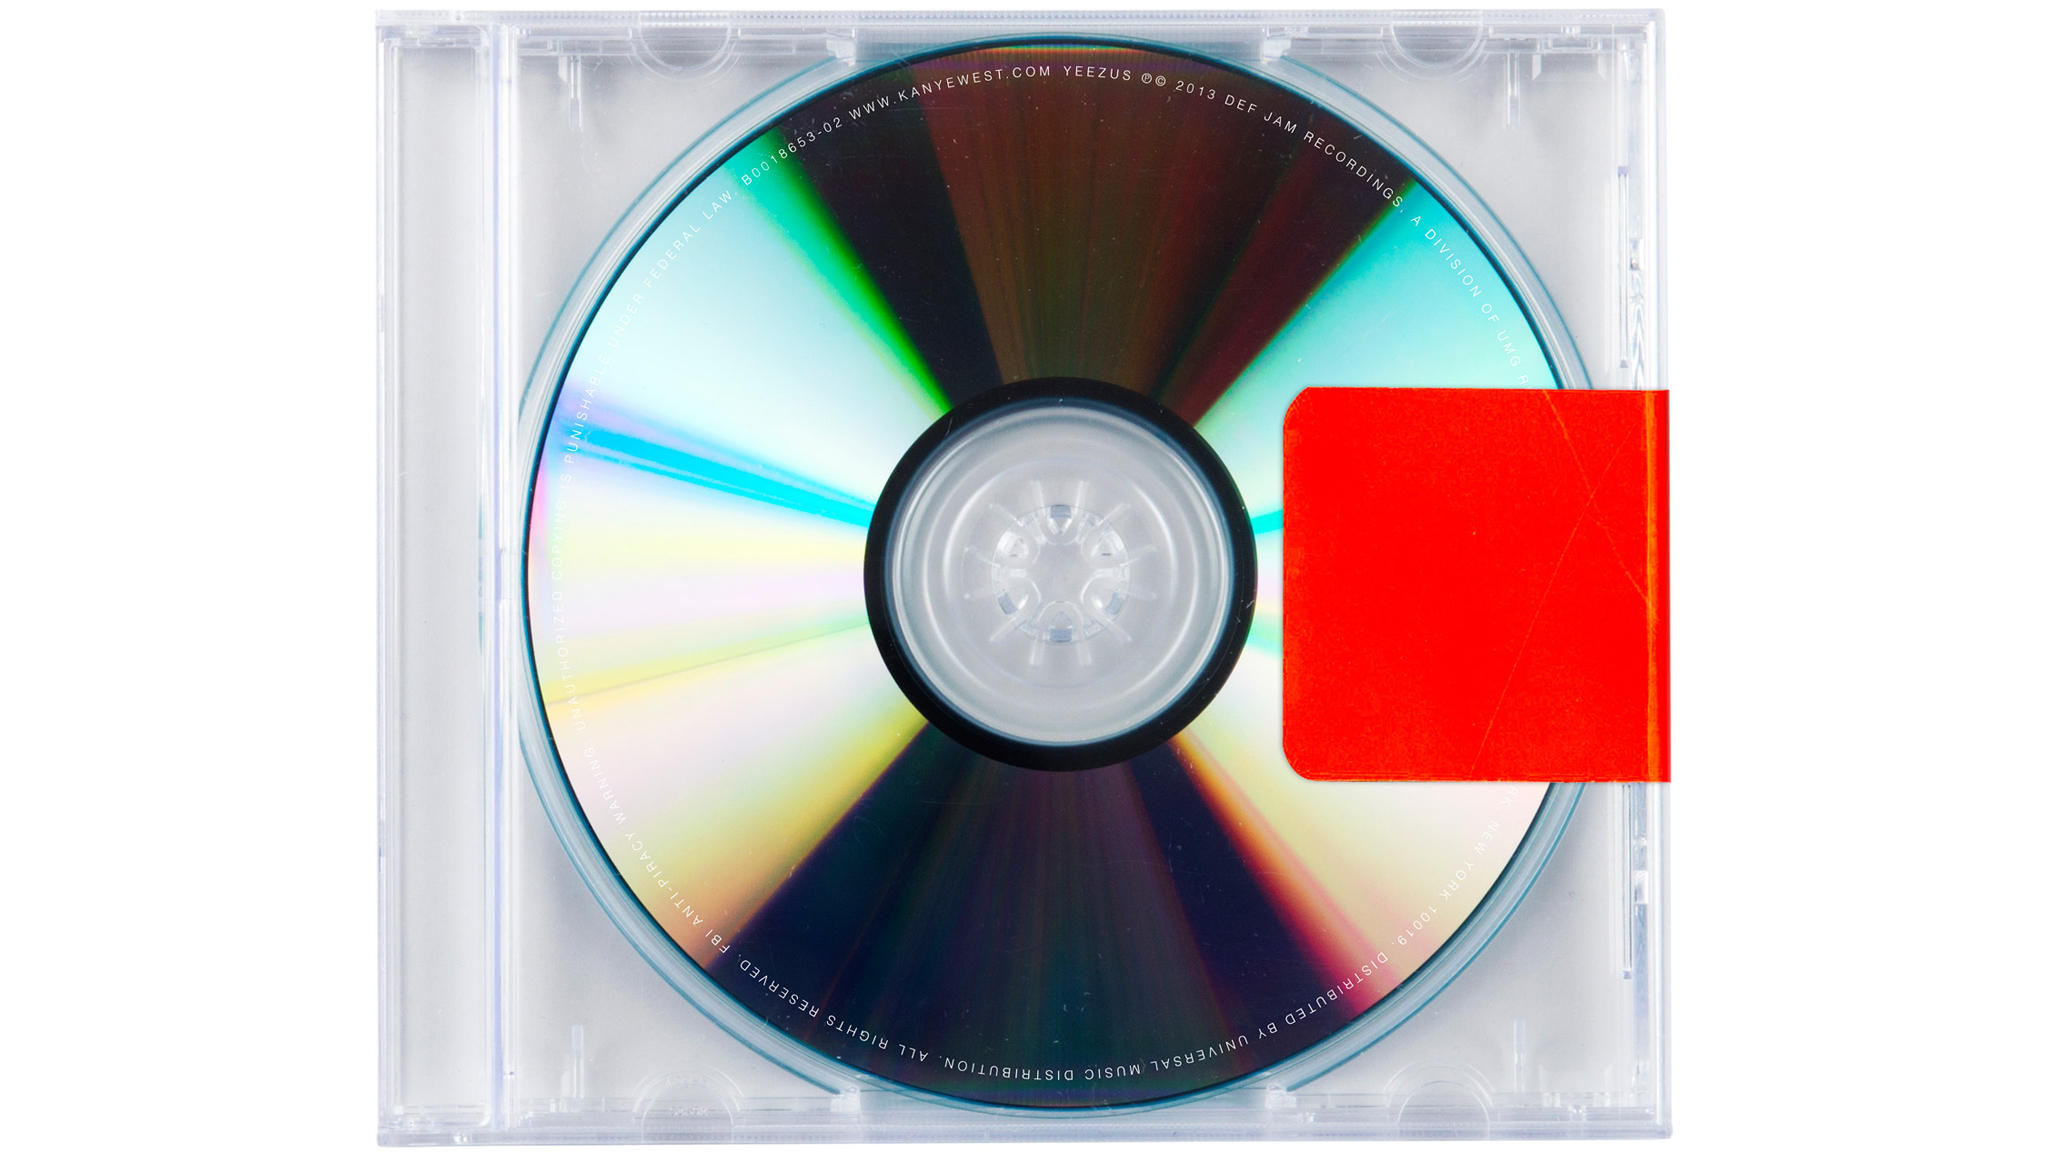 Kanye West – On Sight